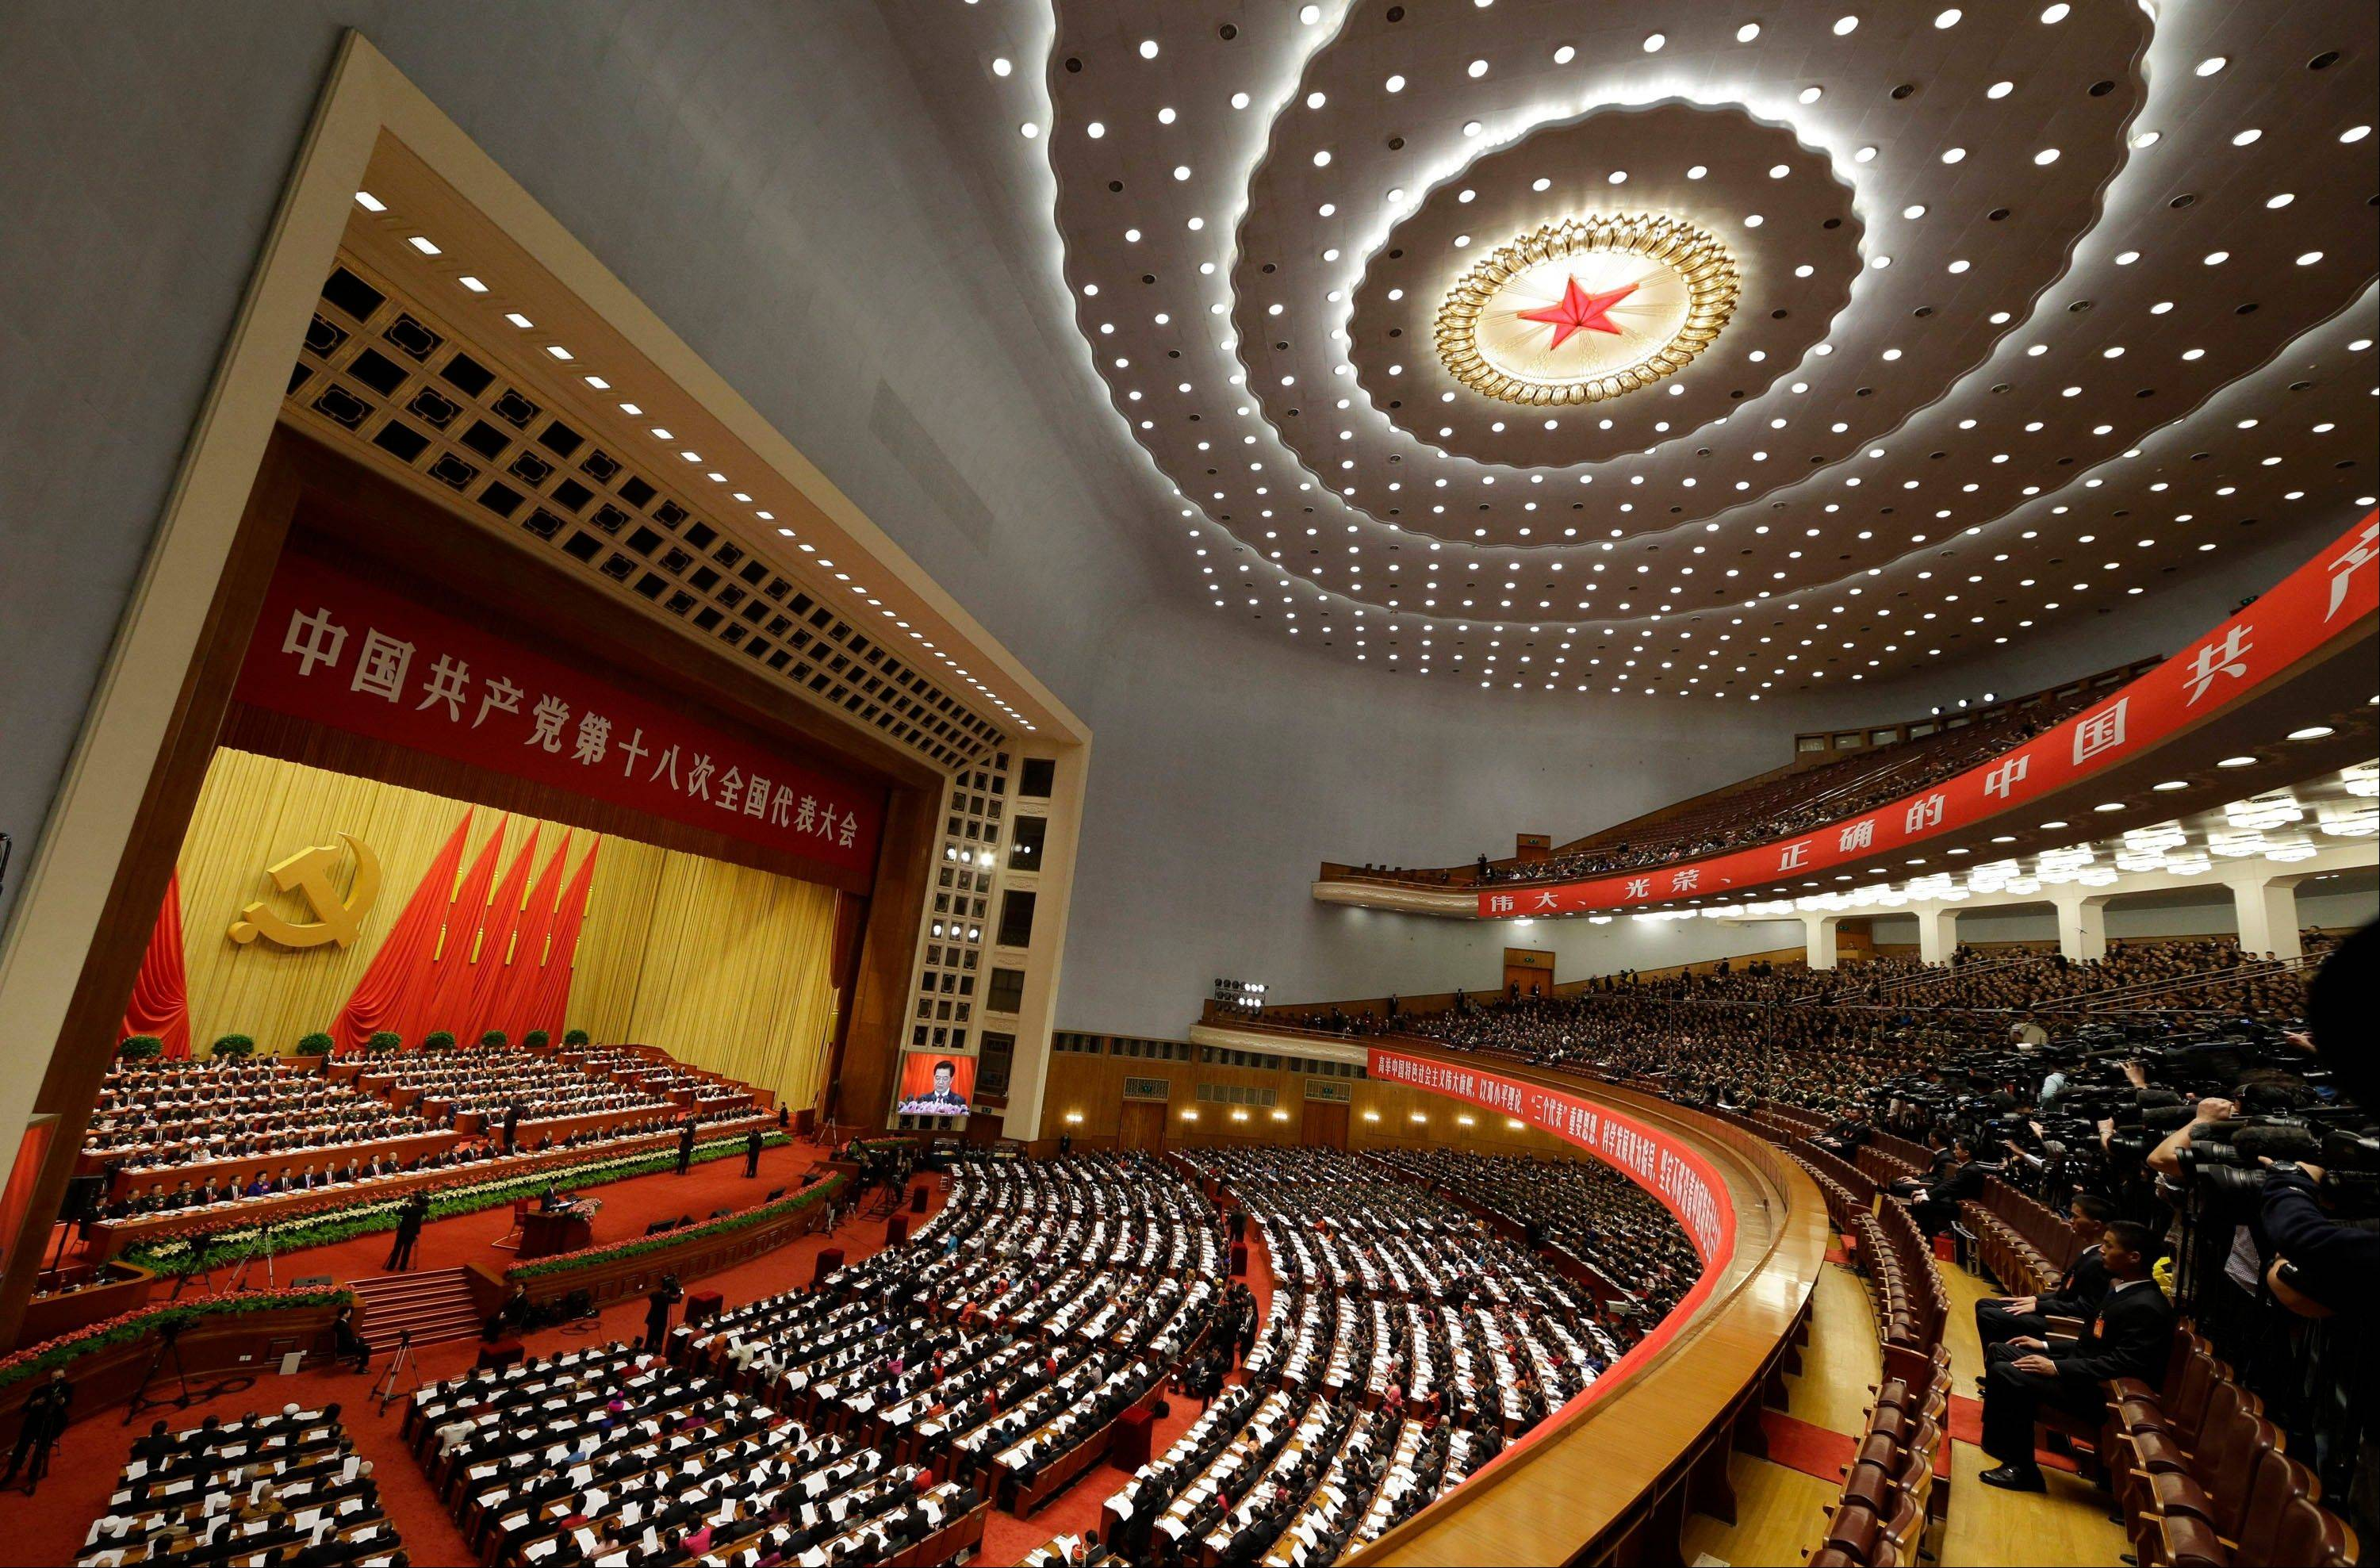 Chinese President Hu Jintao, center on the stage, addresses the opening session of the 18th Communist Party Congress held at the Great Hall of the People in Beijing, China, Thursday, Nov. 8, 2012.